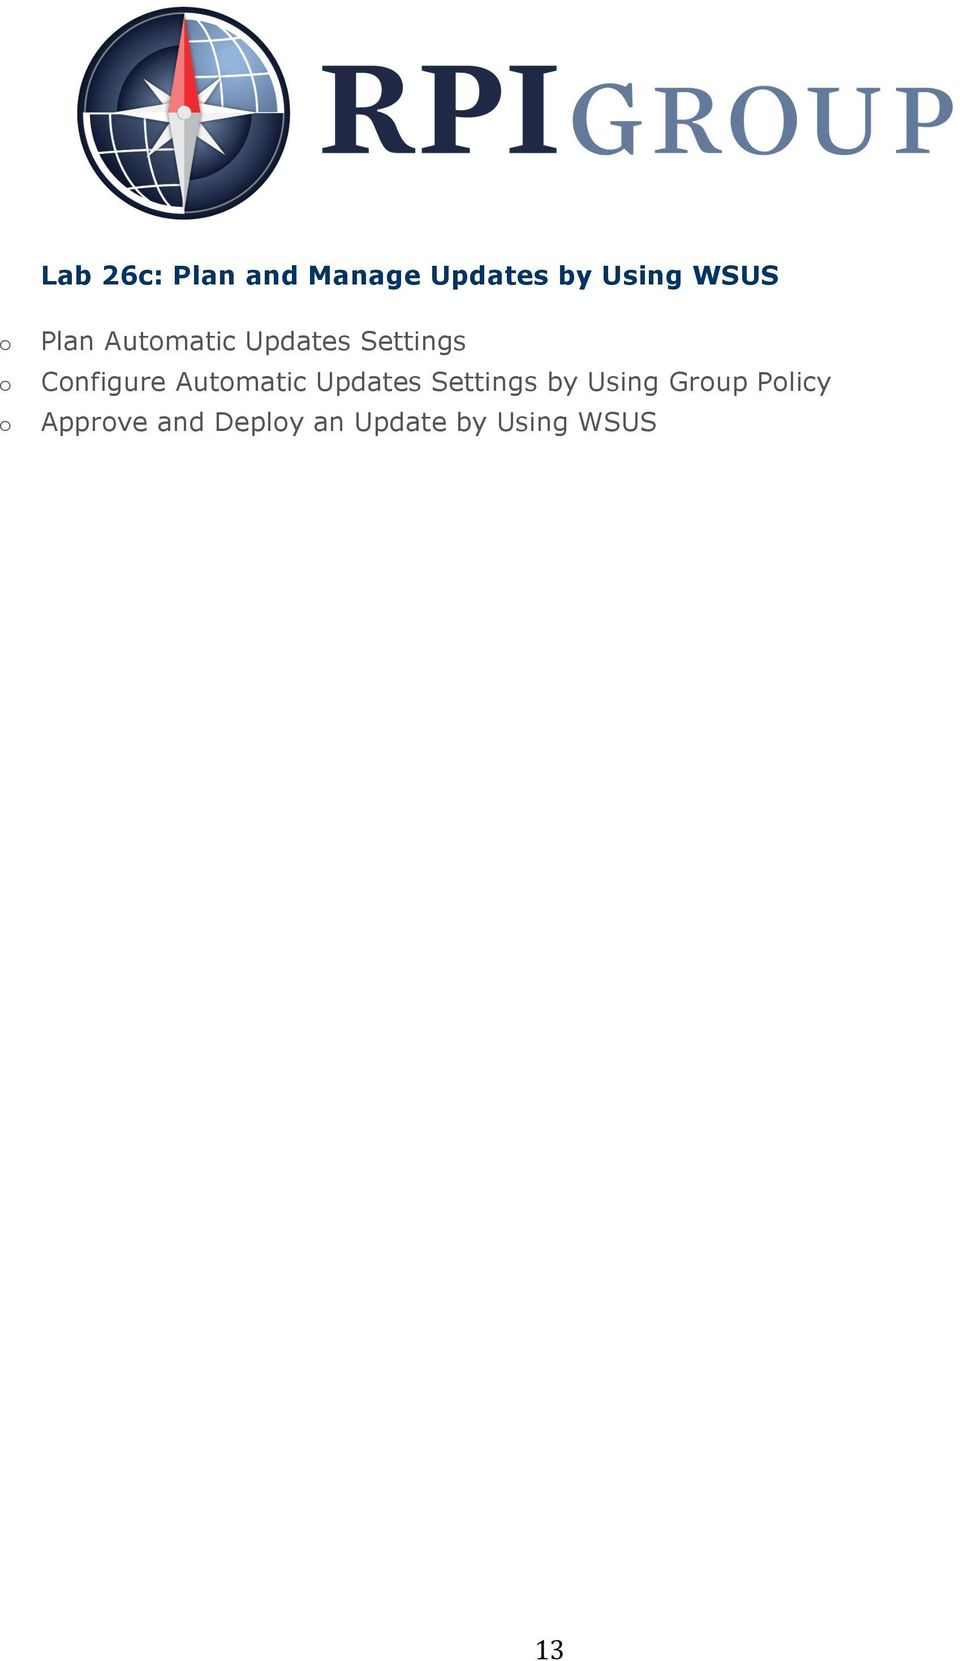 Cnfigure Autmatic Updates Settings by Using